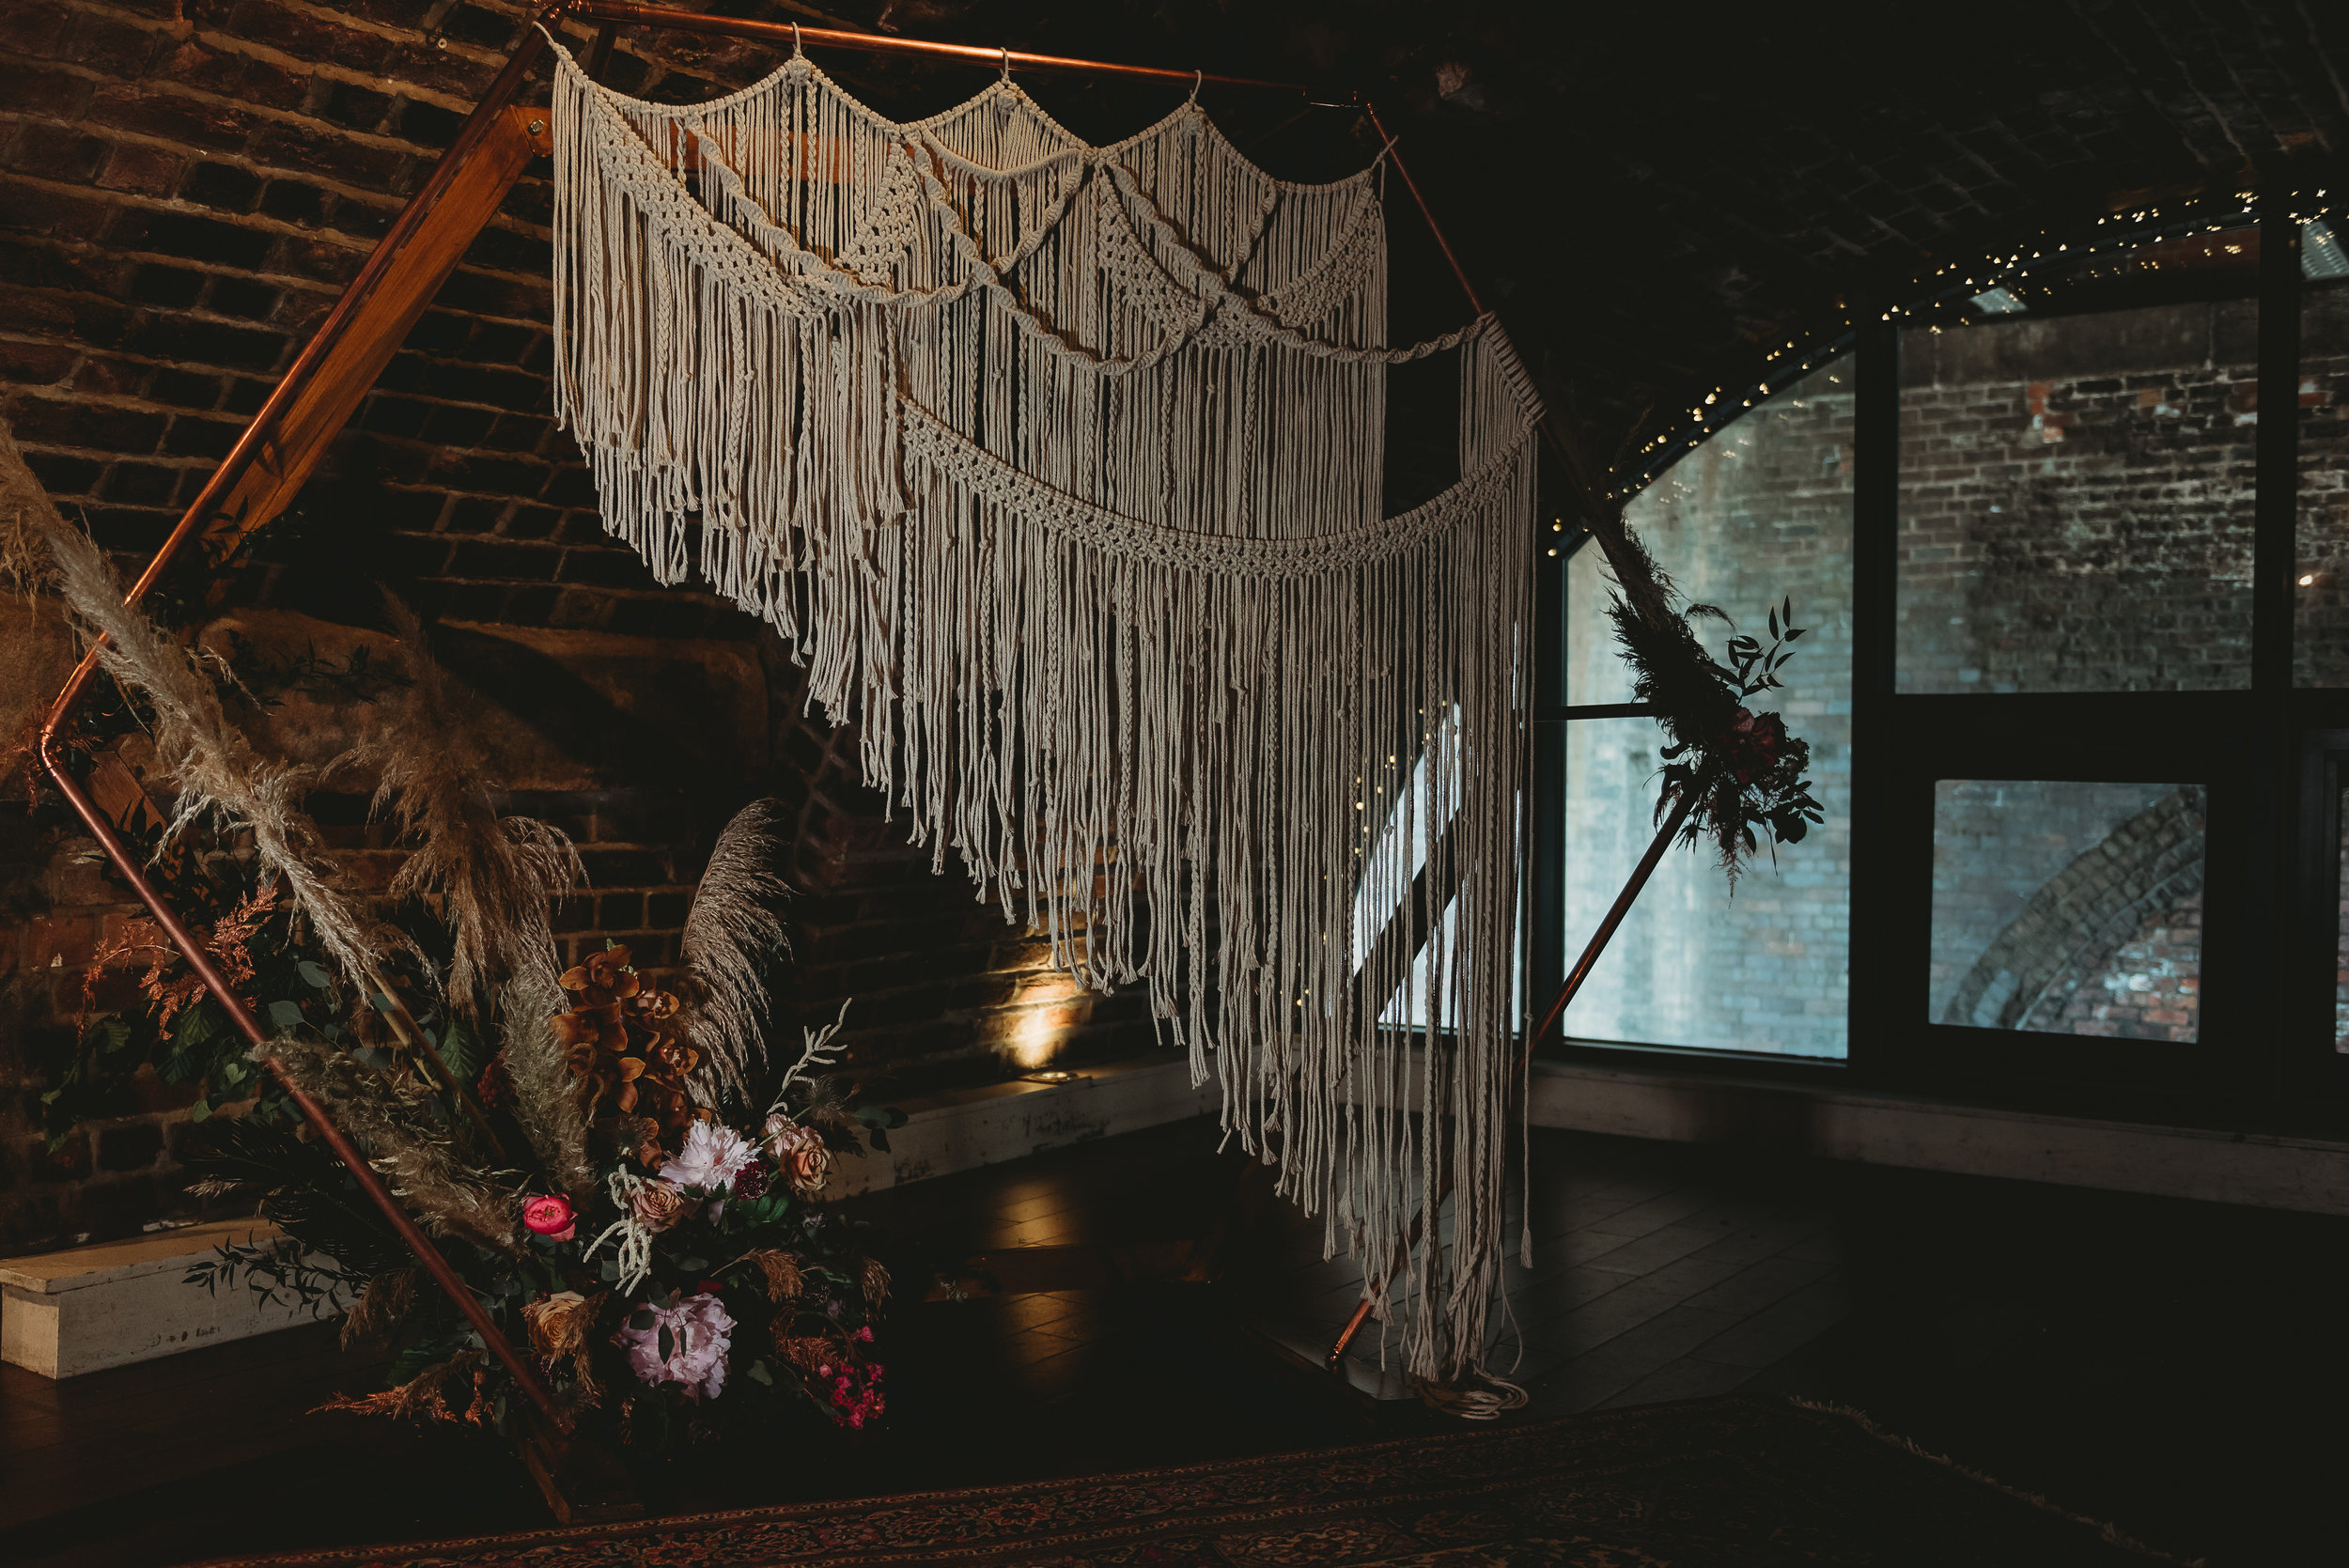 Handmade macrame wedding decor in an industrial wedding venue. See the full shoot here.